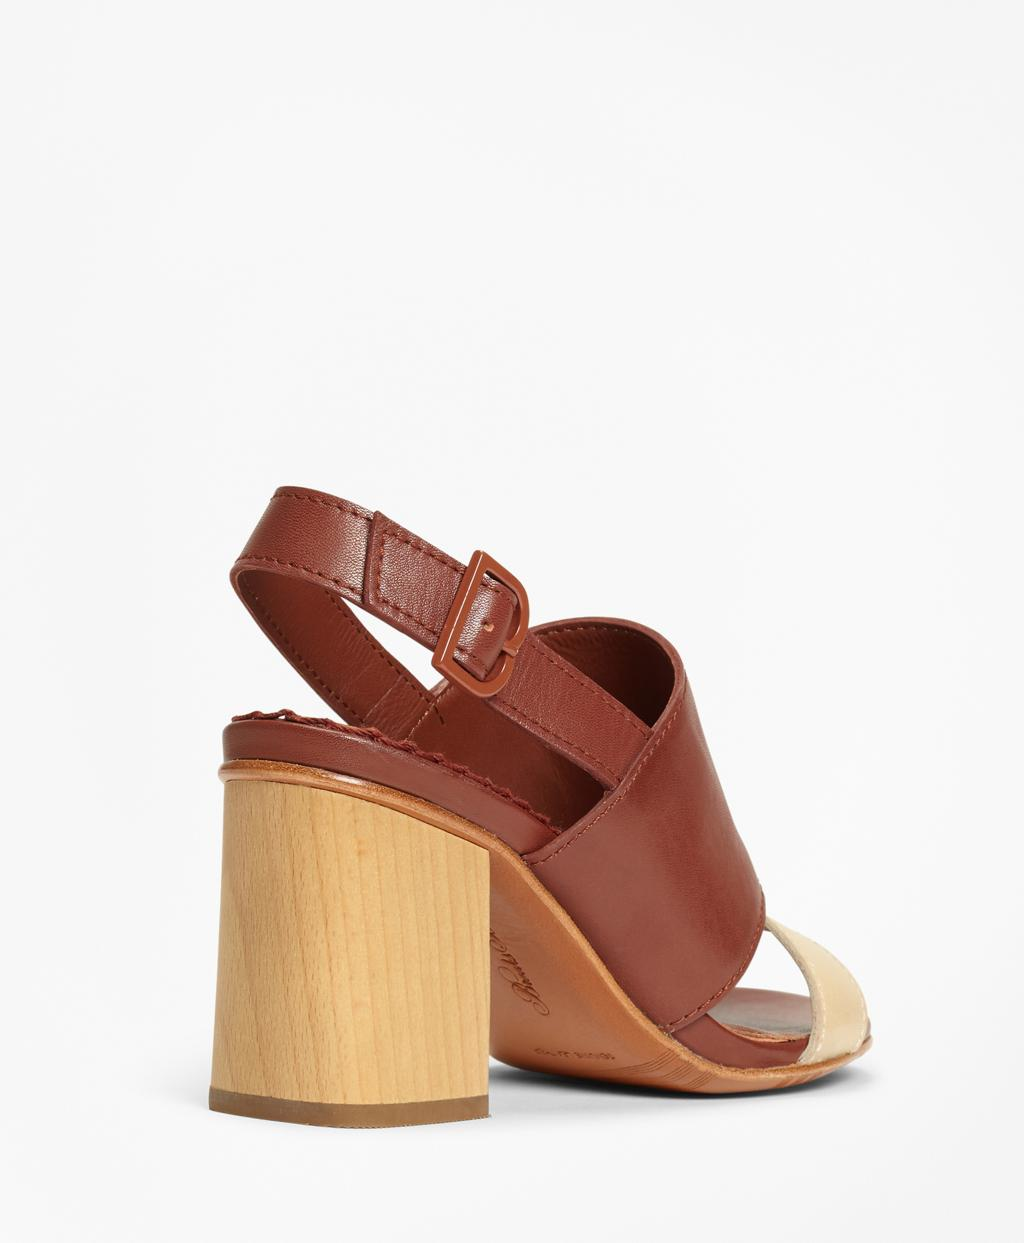 b98d392b7c3 Lyst - Brooks Brothers Two-tone Leather Block-heel Sandals in Brown